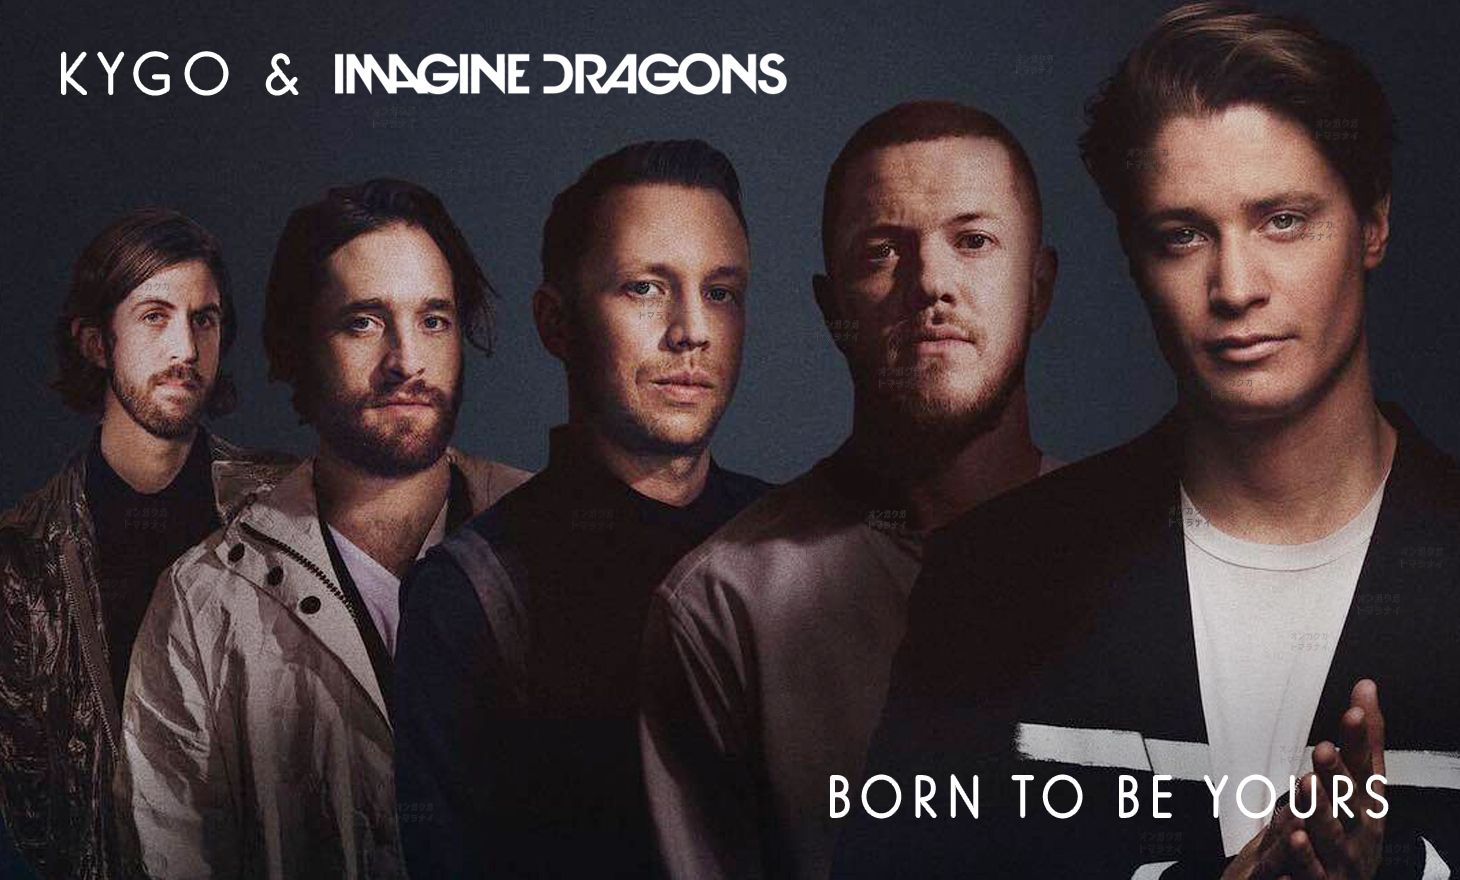 Kygo & Imagine Dragons : Born To Be Yours